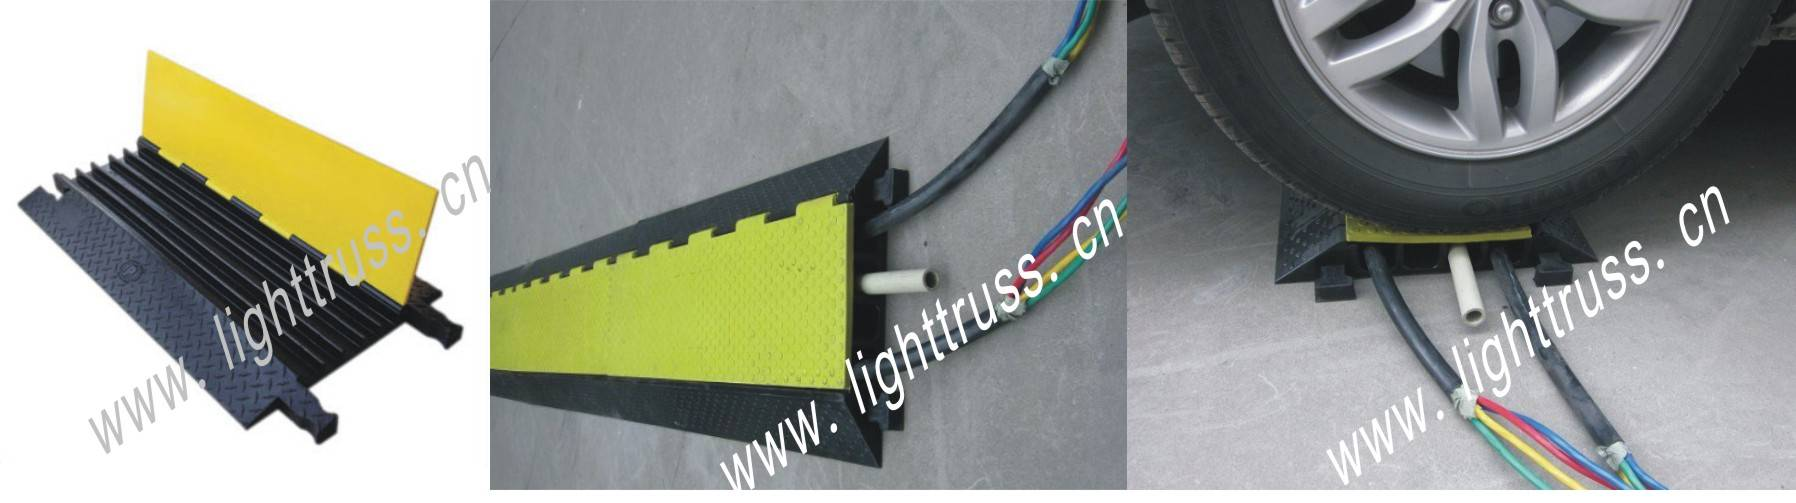 cable cross ramp / cable cross protector / cable cross bridge